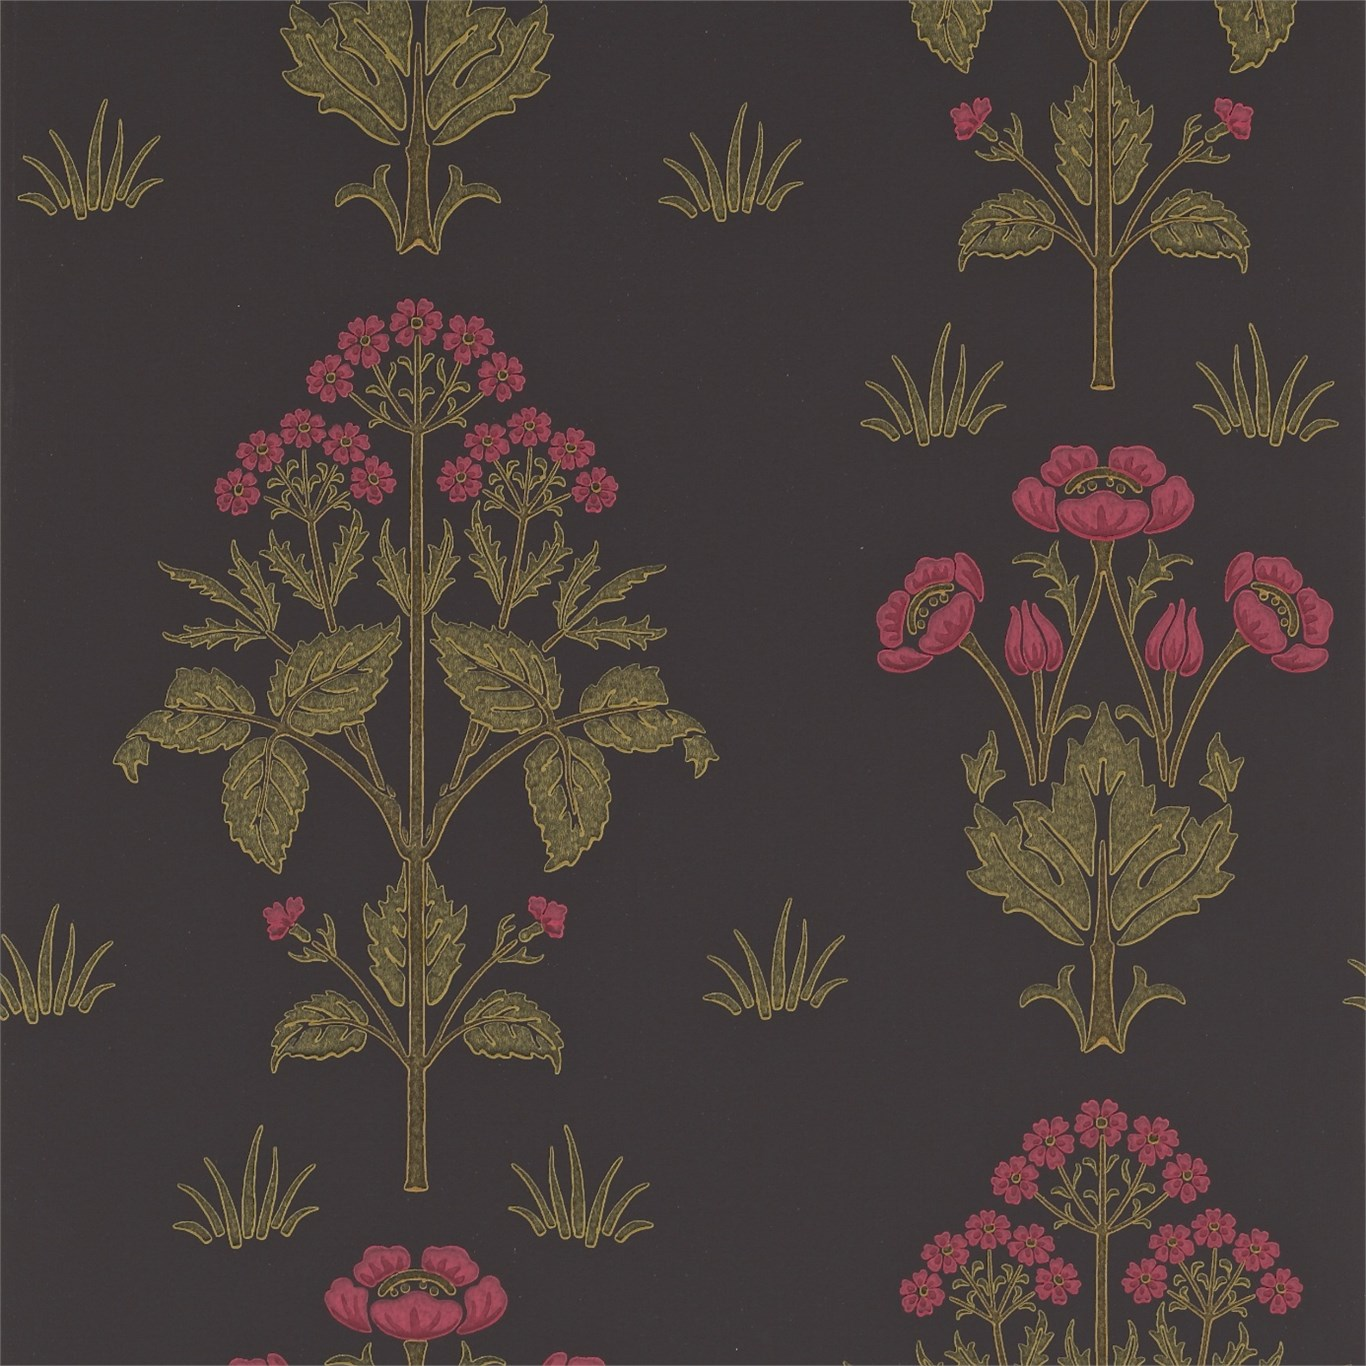 william morris wallpaper design formal analysis William morris (1834, 1896) was the single most influential designer of the nineteenth century morris was an outstanding designer morris & co grew into a flourishing and fashionable decorating firm renowned for its wallpapers and textiles.